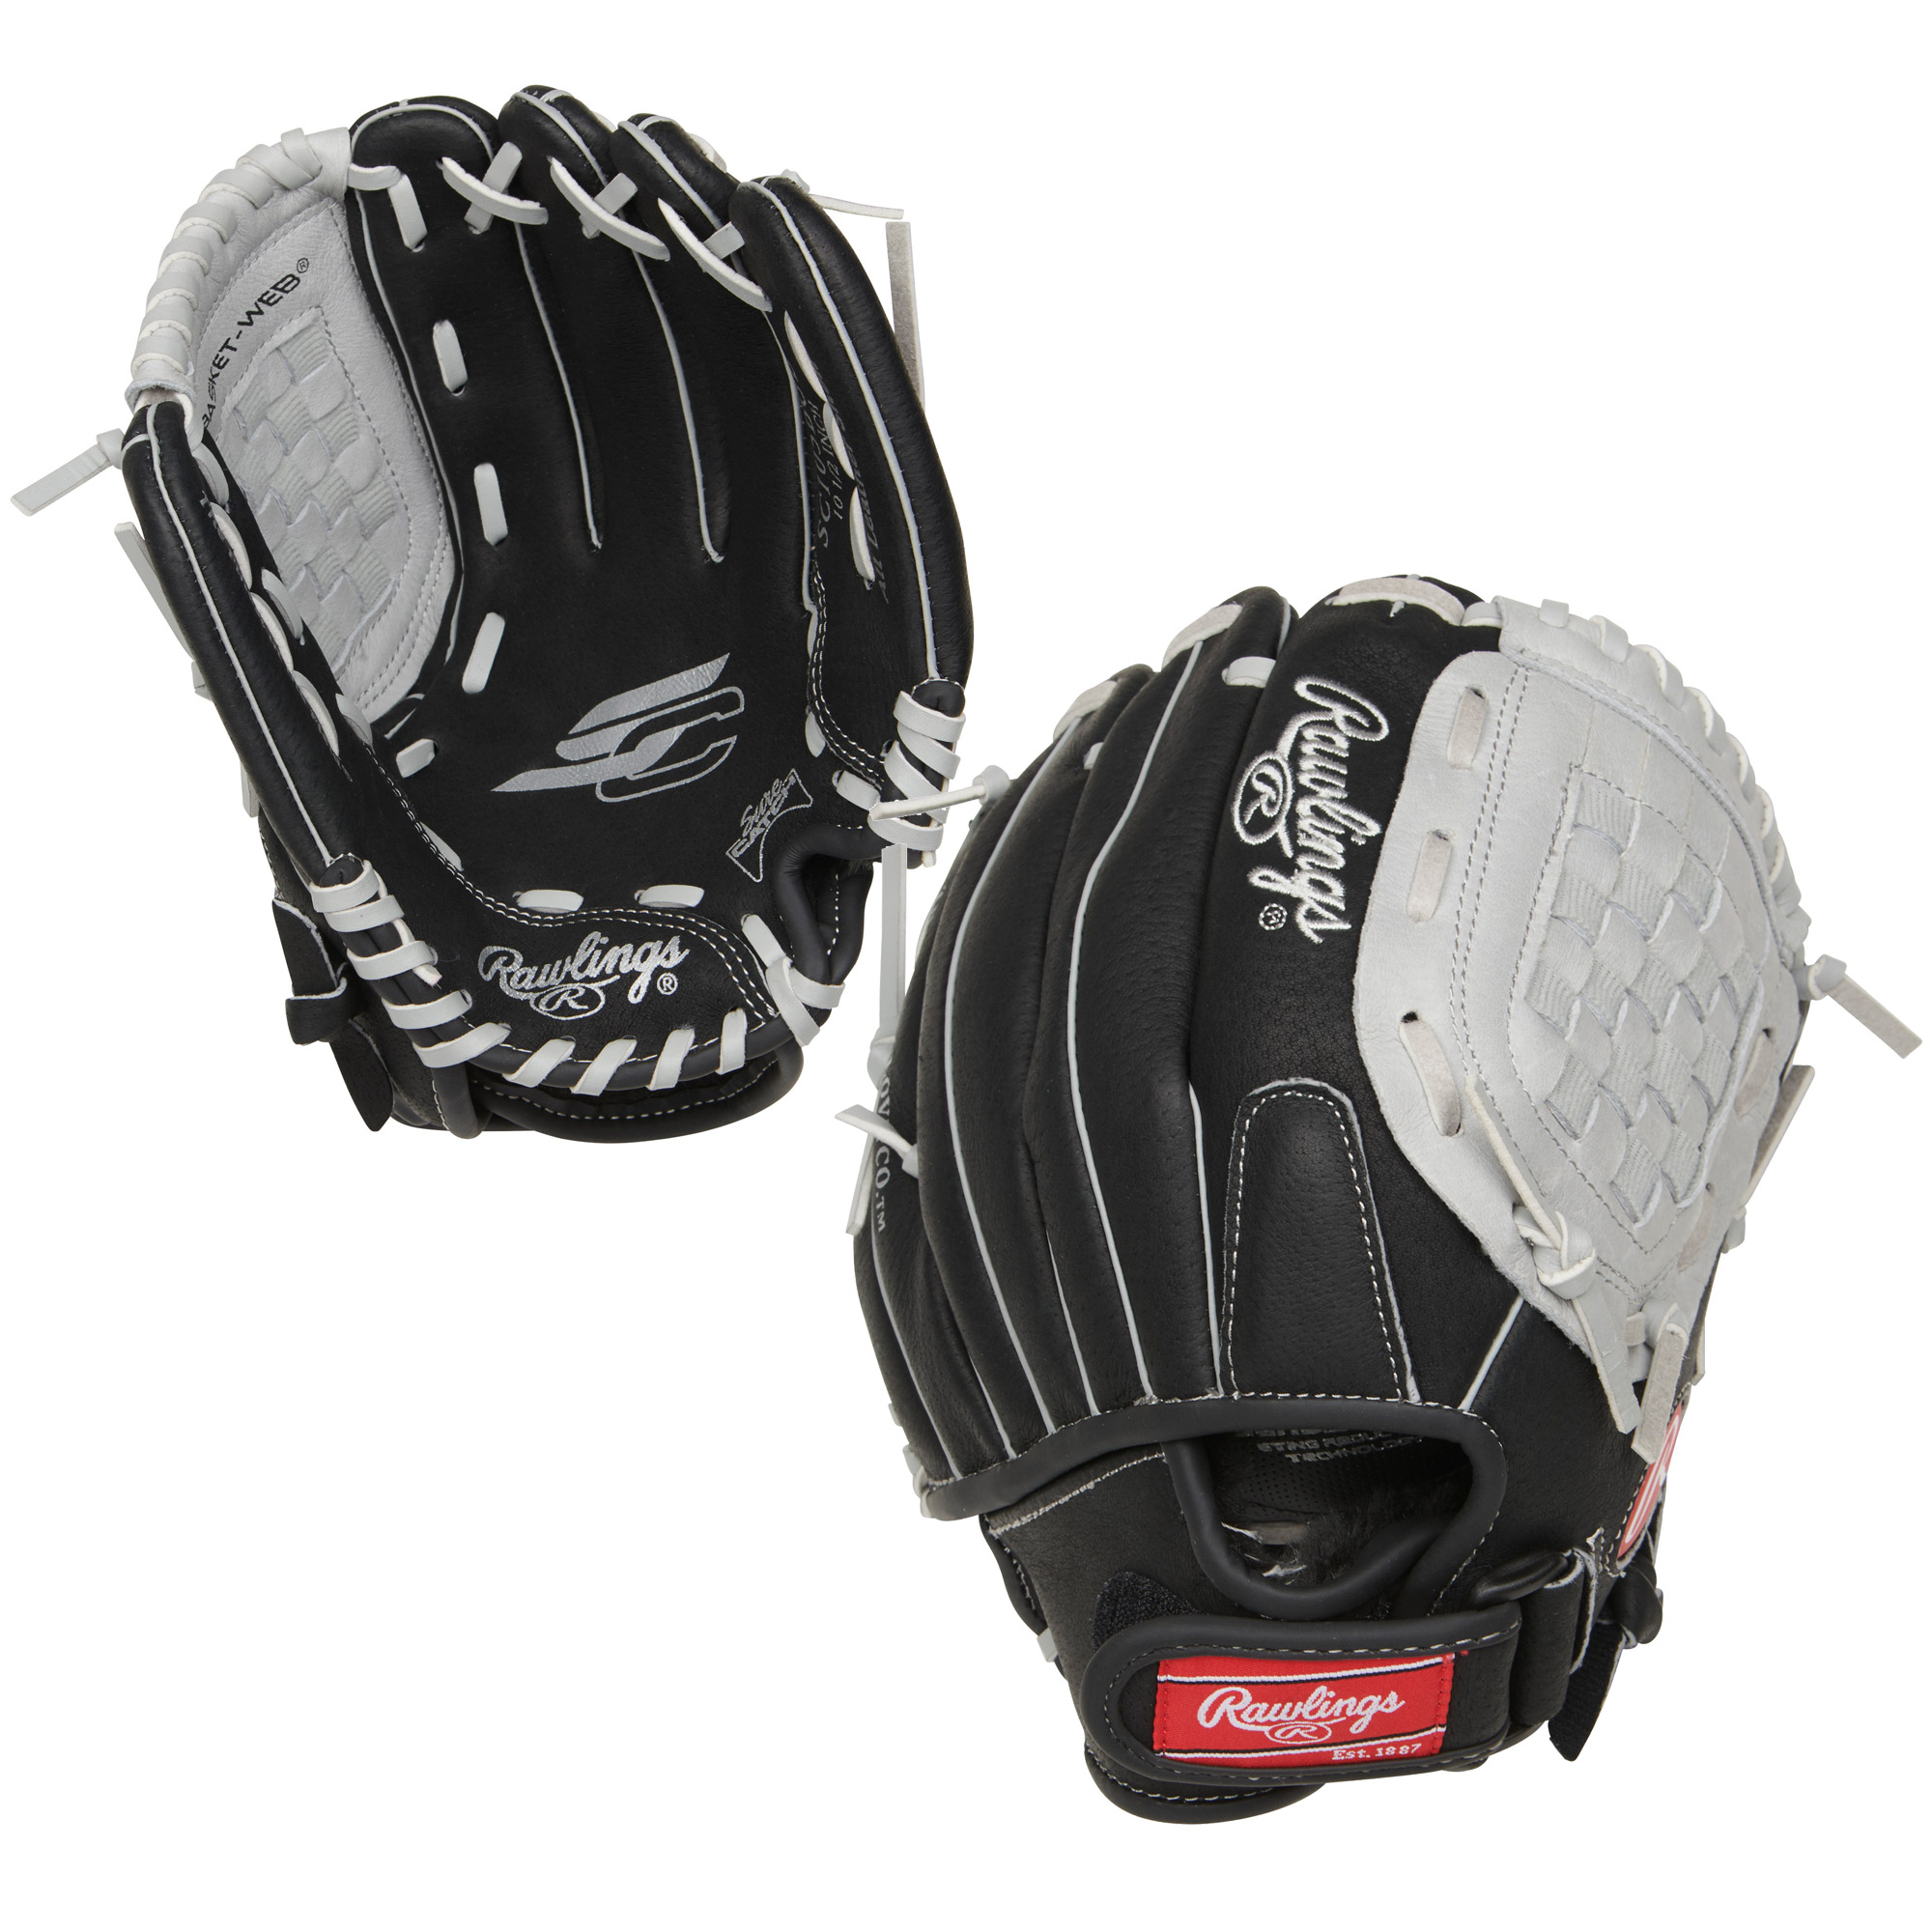 "SC105BGB Rawlings Sure Catch Ball Glove Basket Web 10.5"" - Regular MAIN"